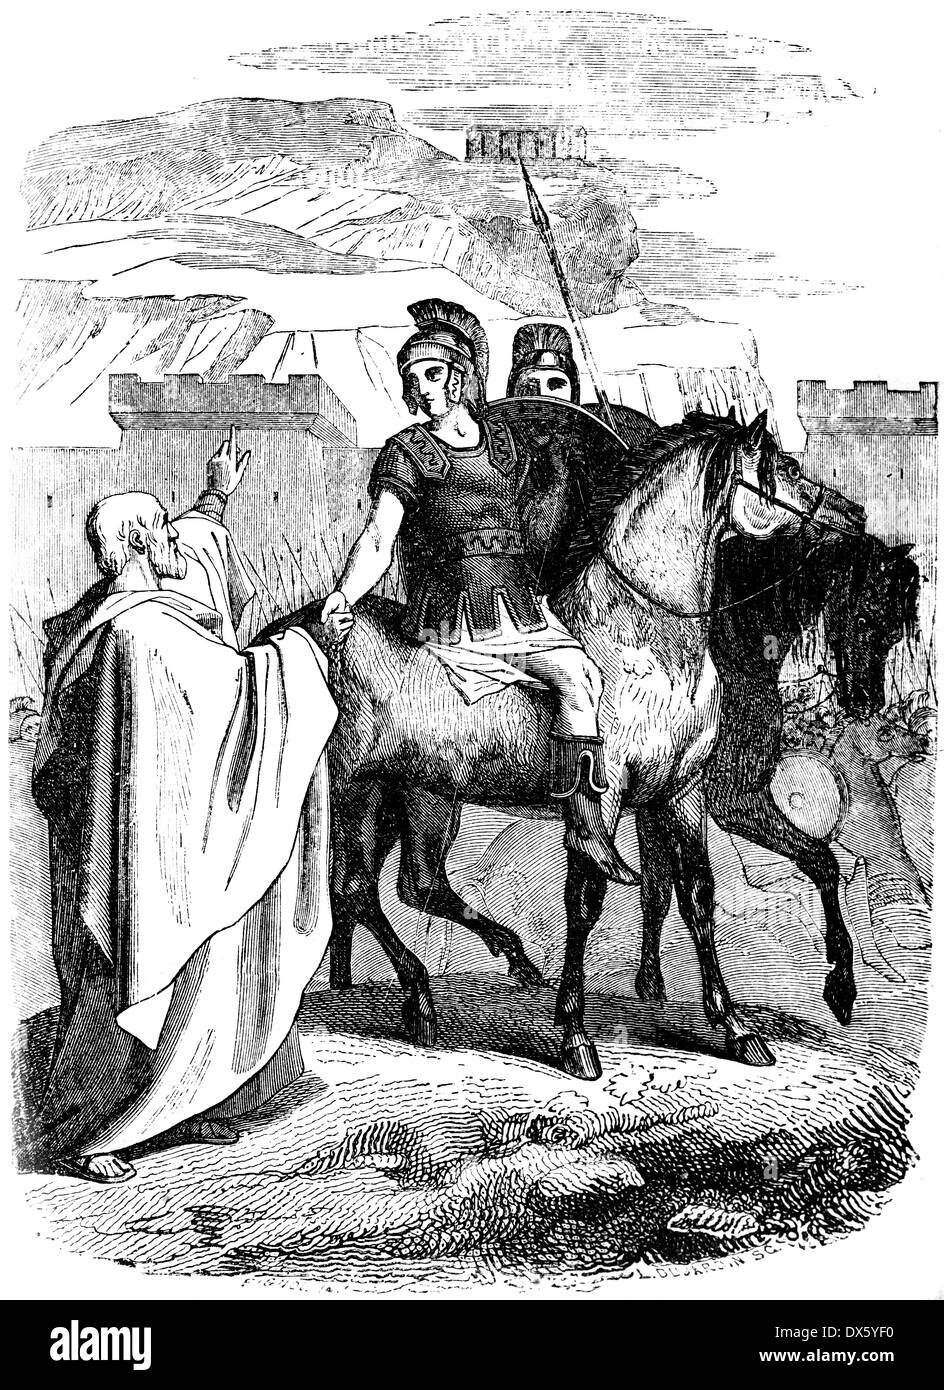 Alexander the Great and Aristotle, illustration from book dated 1878 Stock Photo